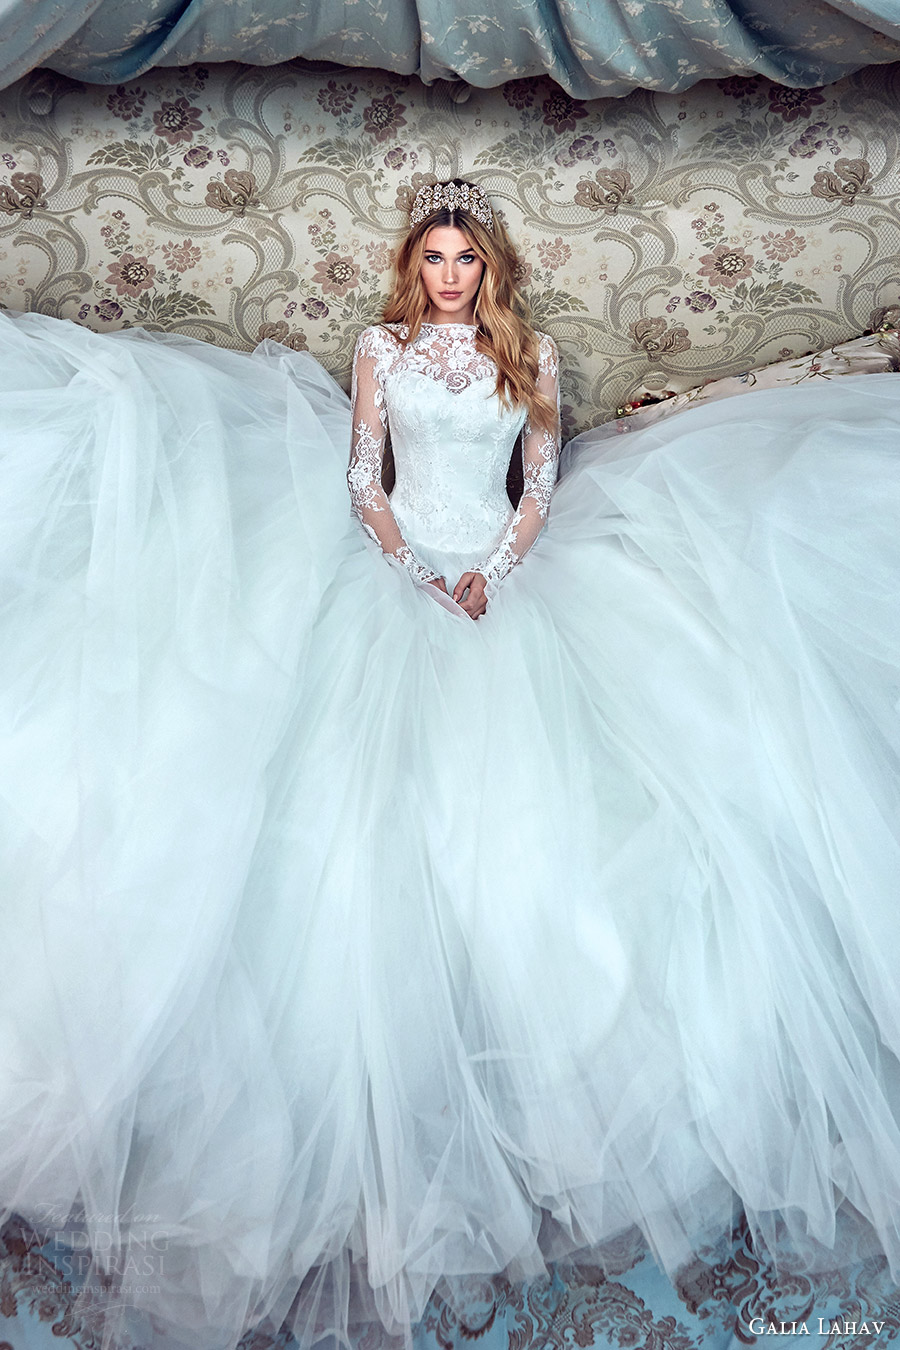 galia lahav wedding dresses galia lahav wedding dresses galia lahav wedding dress 12 nz